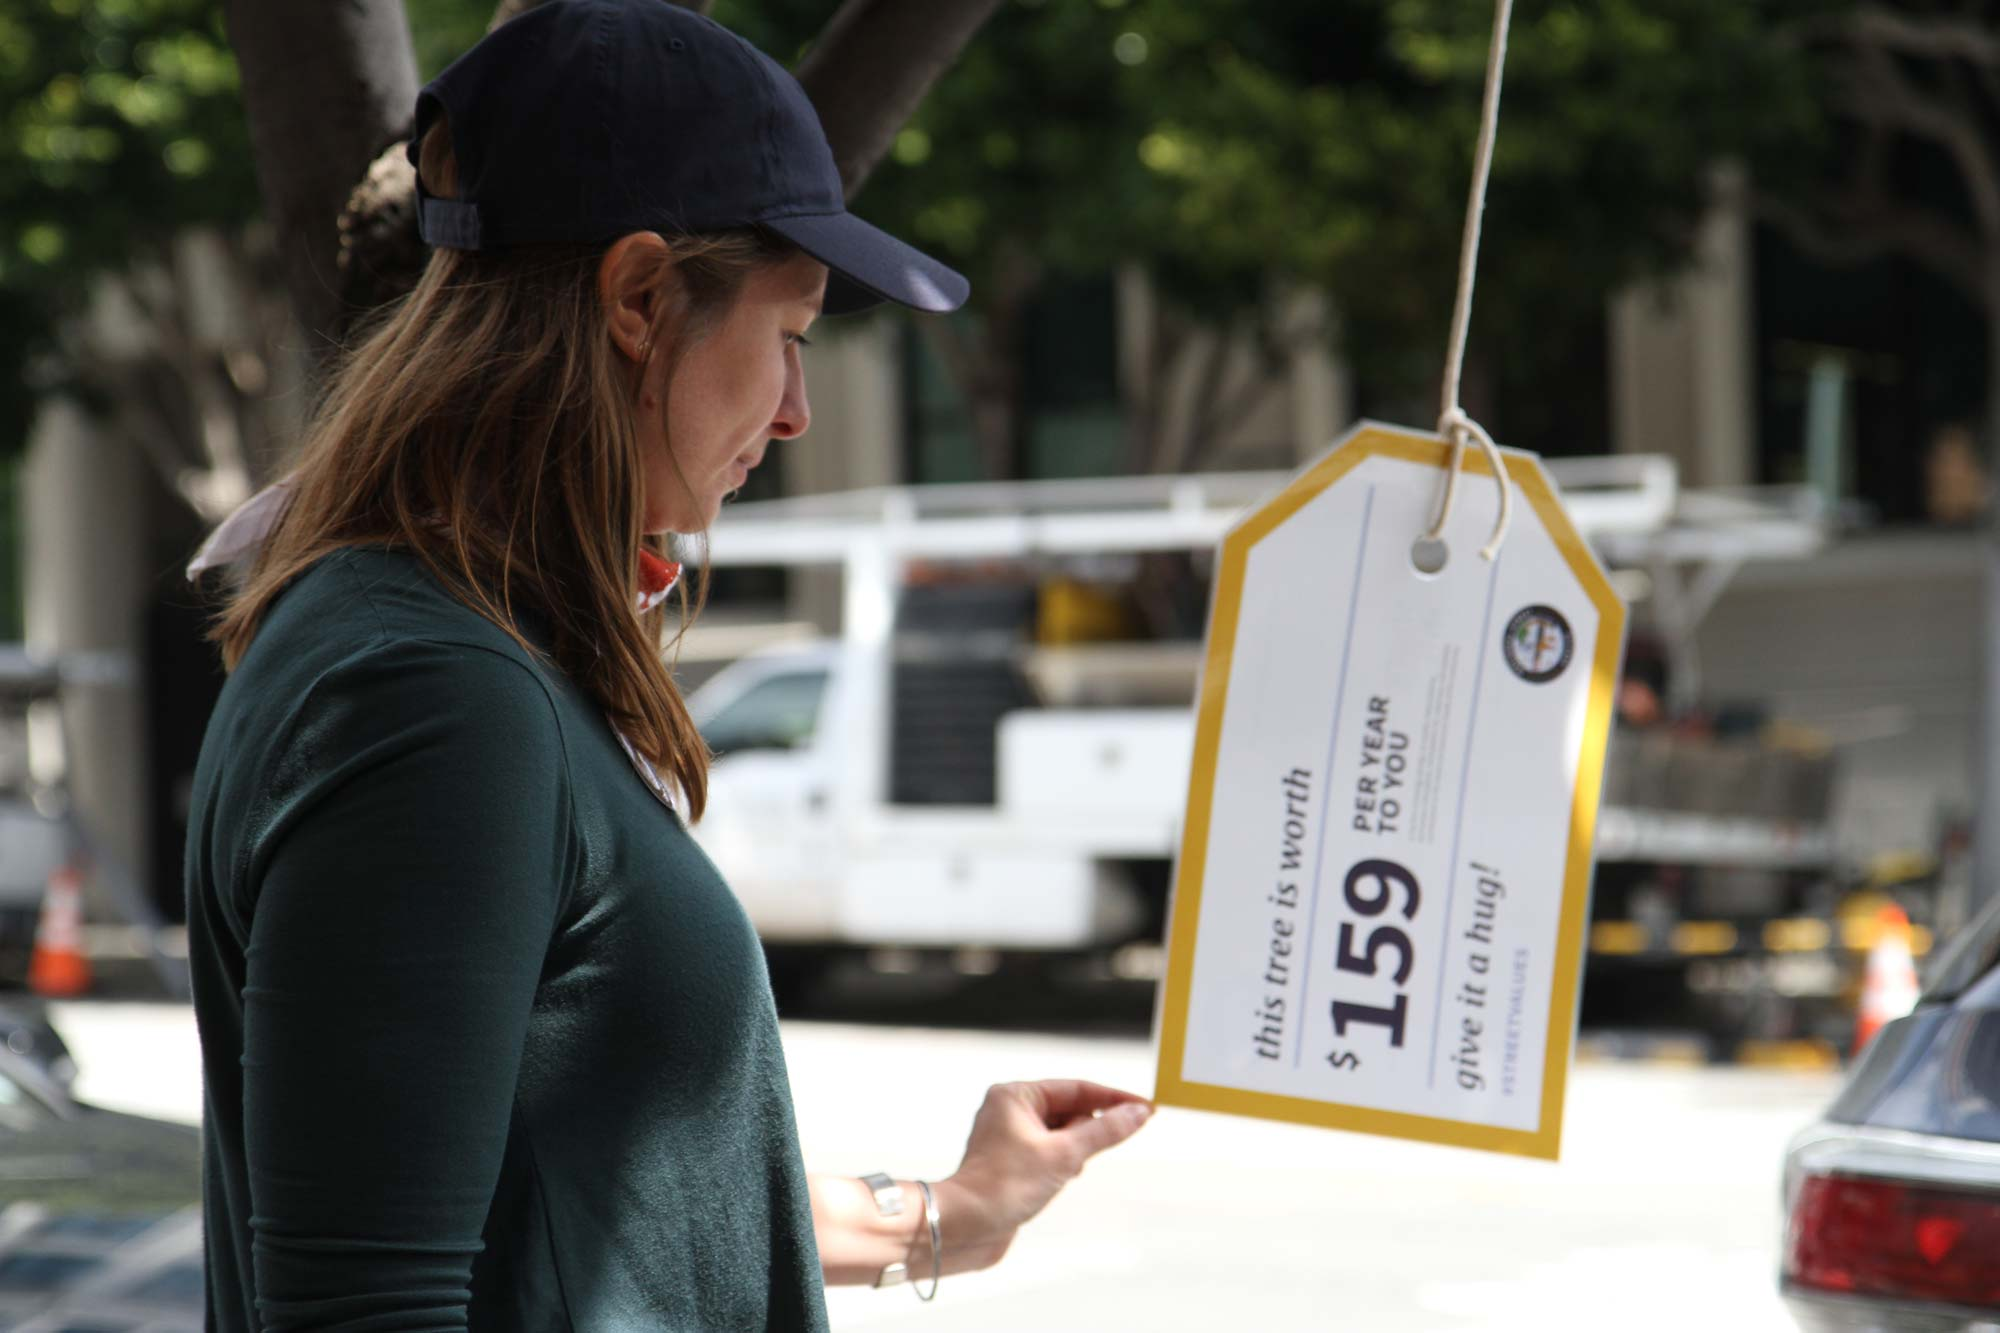 A National Street Service Street Values Project - Price Tag the City